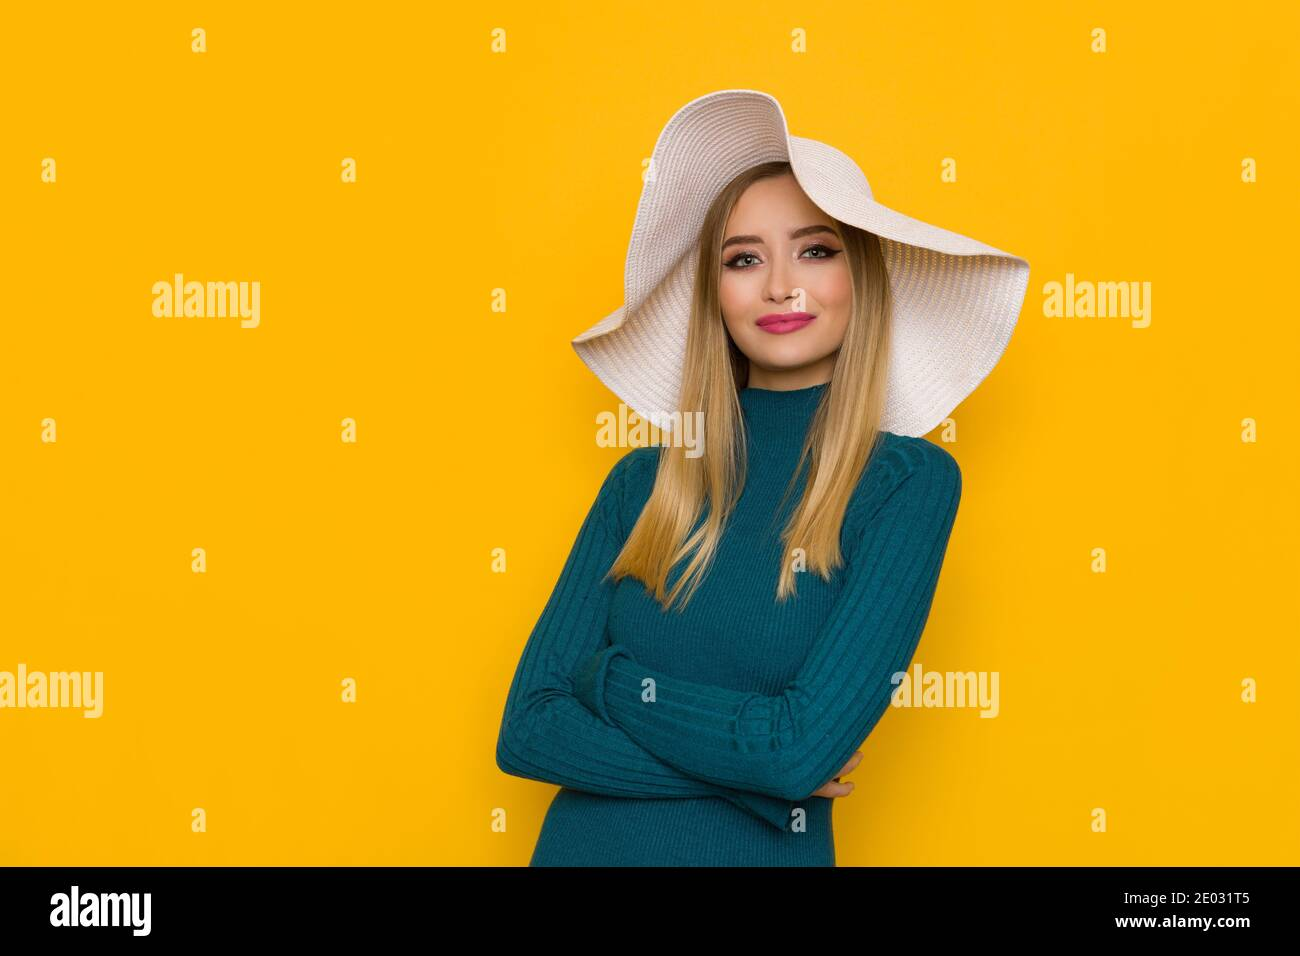 Beautiful young woman in white sun hat and teal sweater is posing with arms crossed. Waist up studio shot on yellow background. Stock Photo